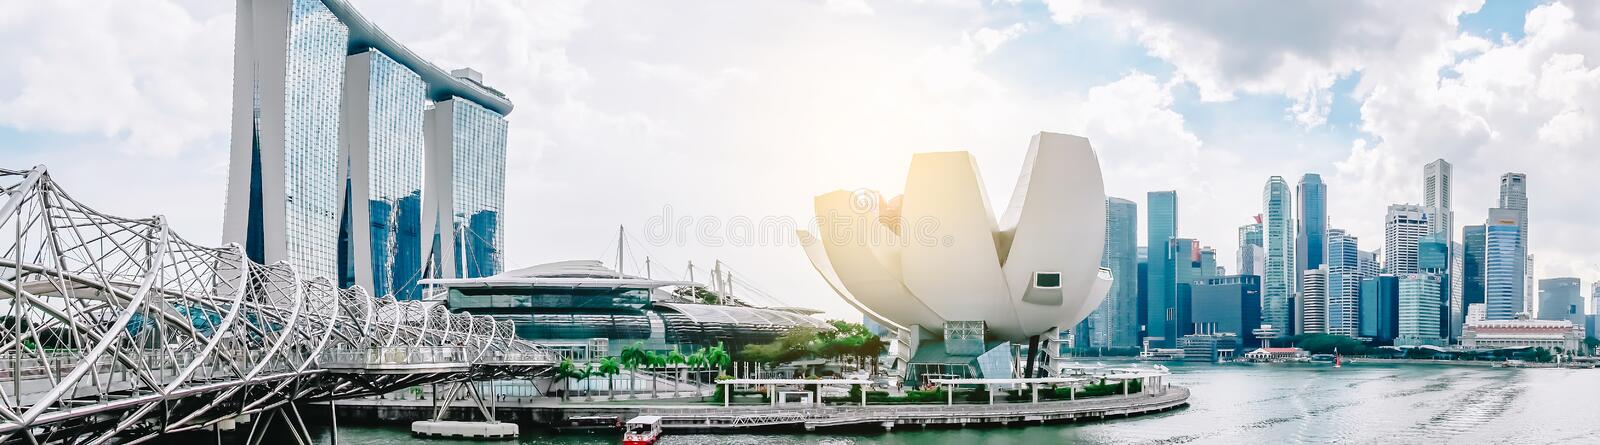 Vibrant panorama background of Marina Bay. Marina Bay is one of the most famous tourist attraction in Singapore royalty free stock photography